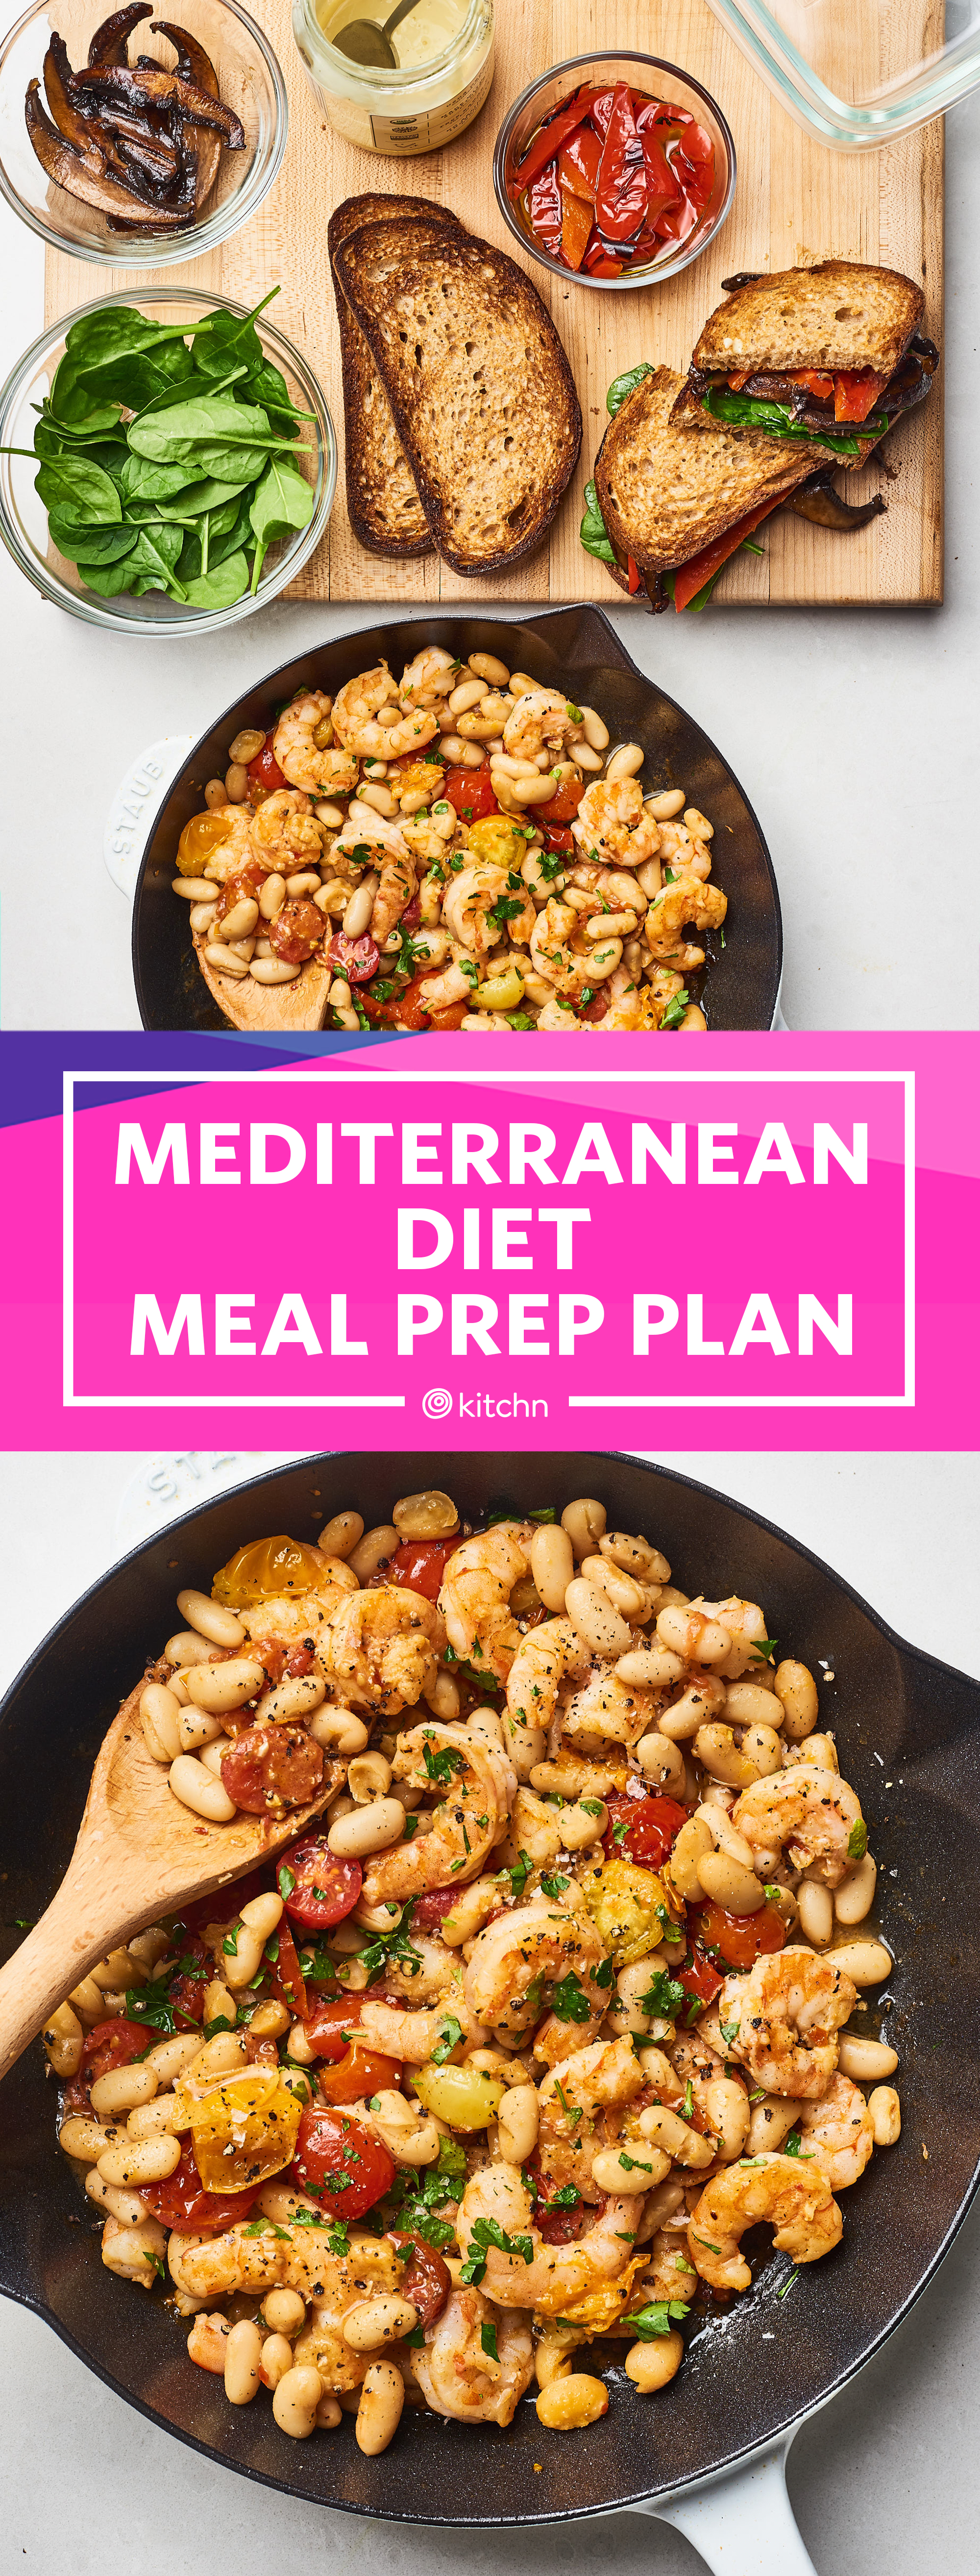 How to Prep a Week of Easy Mediterranean Diet Meals | Kitchn